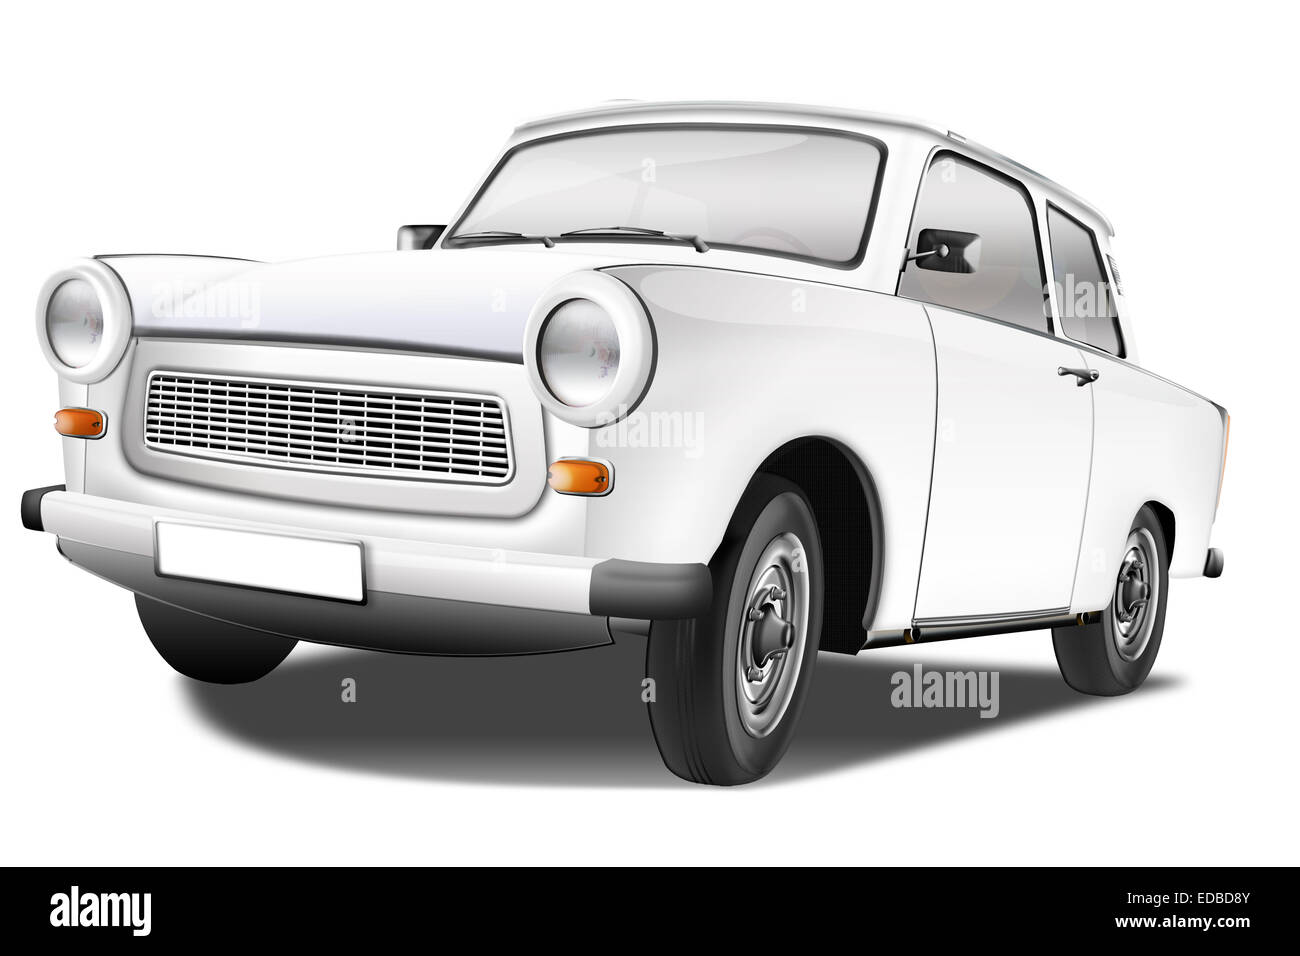 Trabant Clipart Car Illustration Stock Photos Car Illustration Stock Images